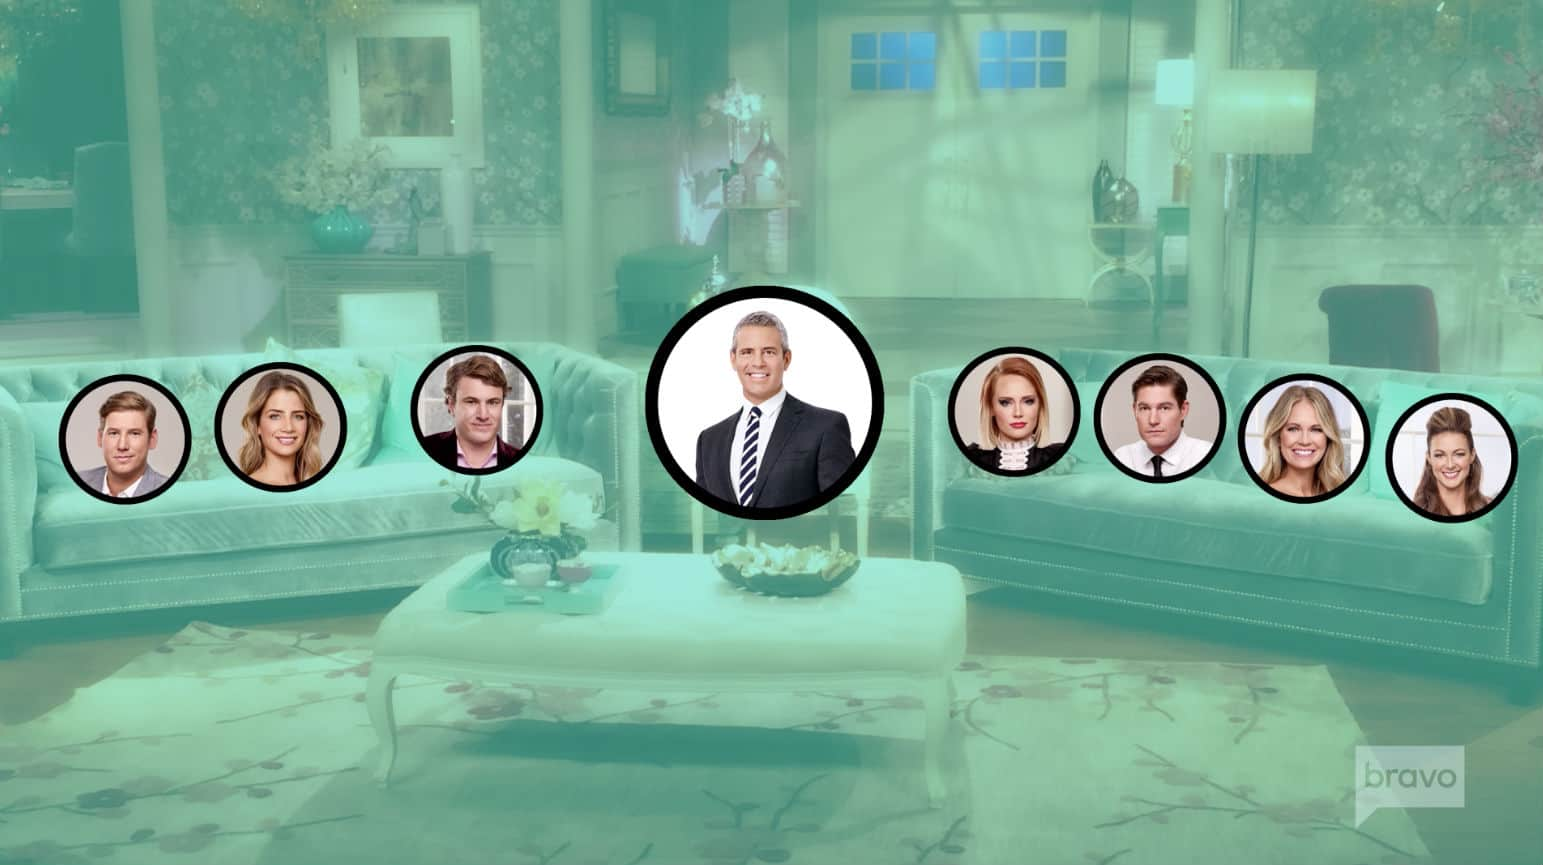 Southern Charm Reunion Seating Chart